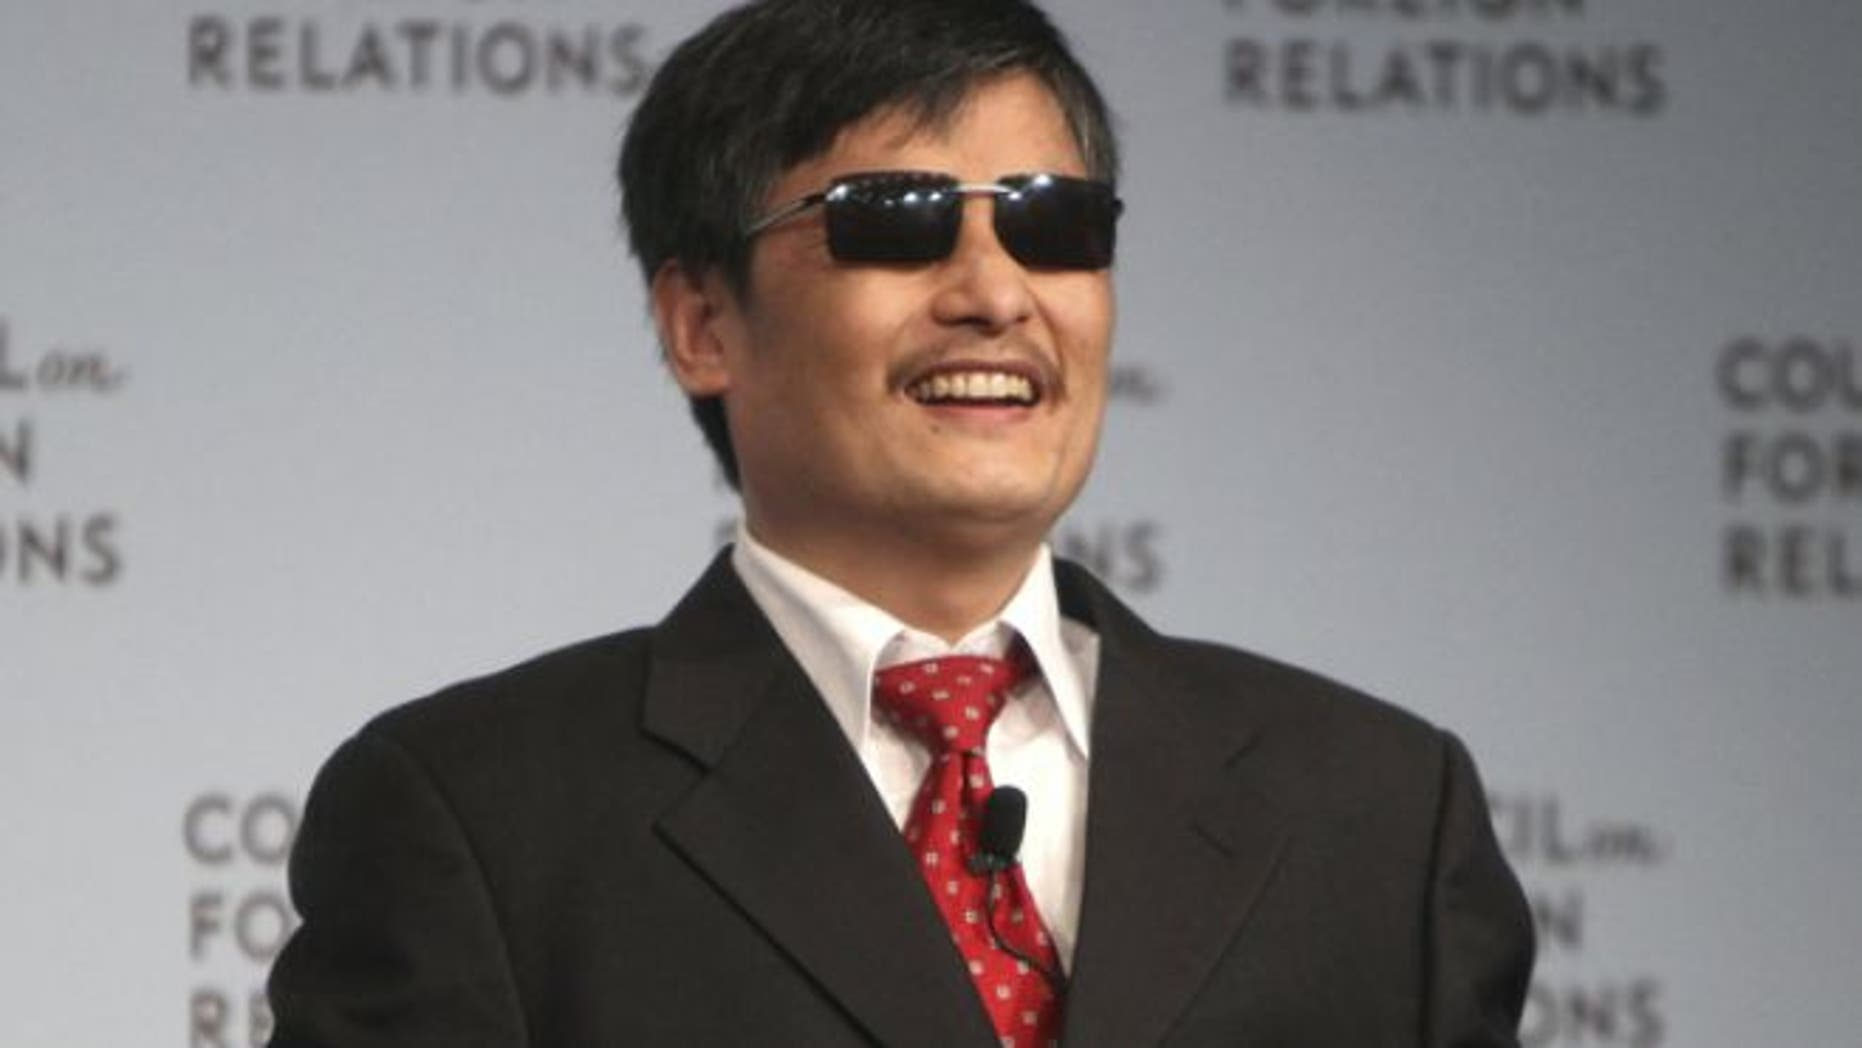 May 31, 2012: Chen Guangcheng speaks at the Council on Foreign Relations in New York.